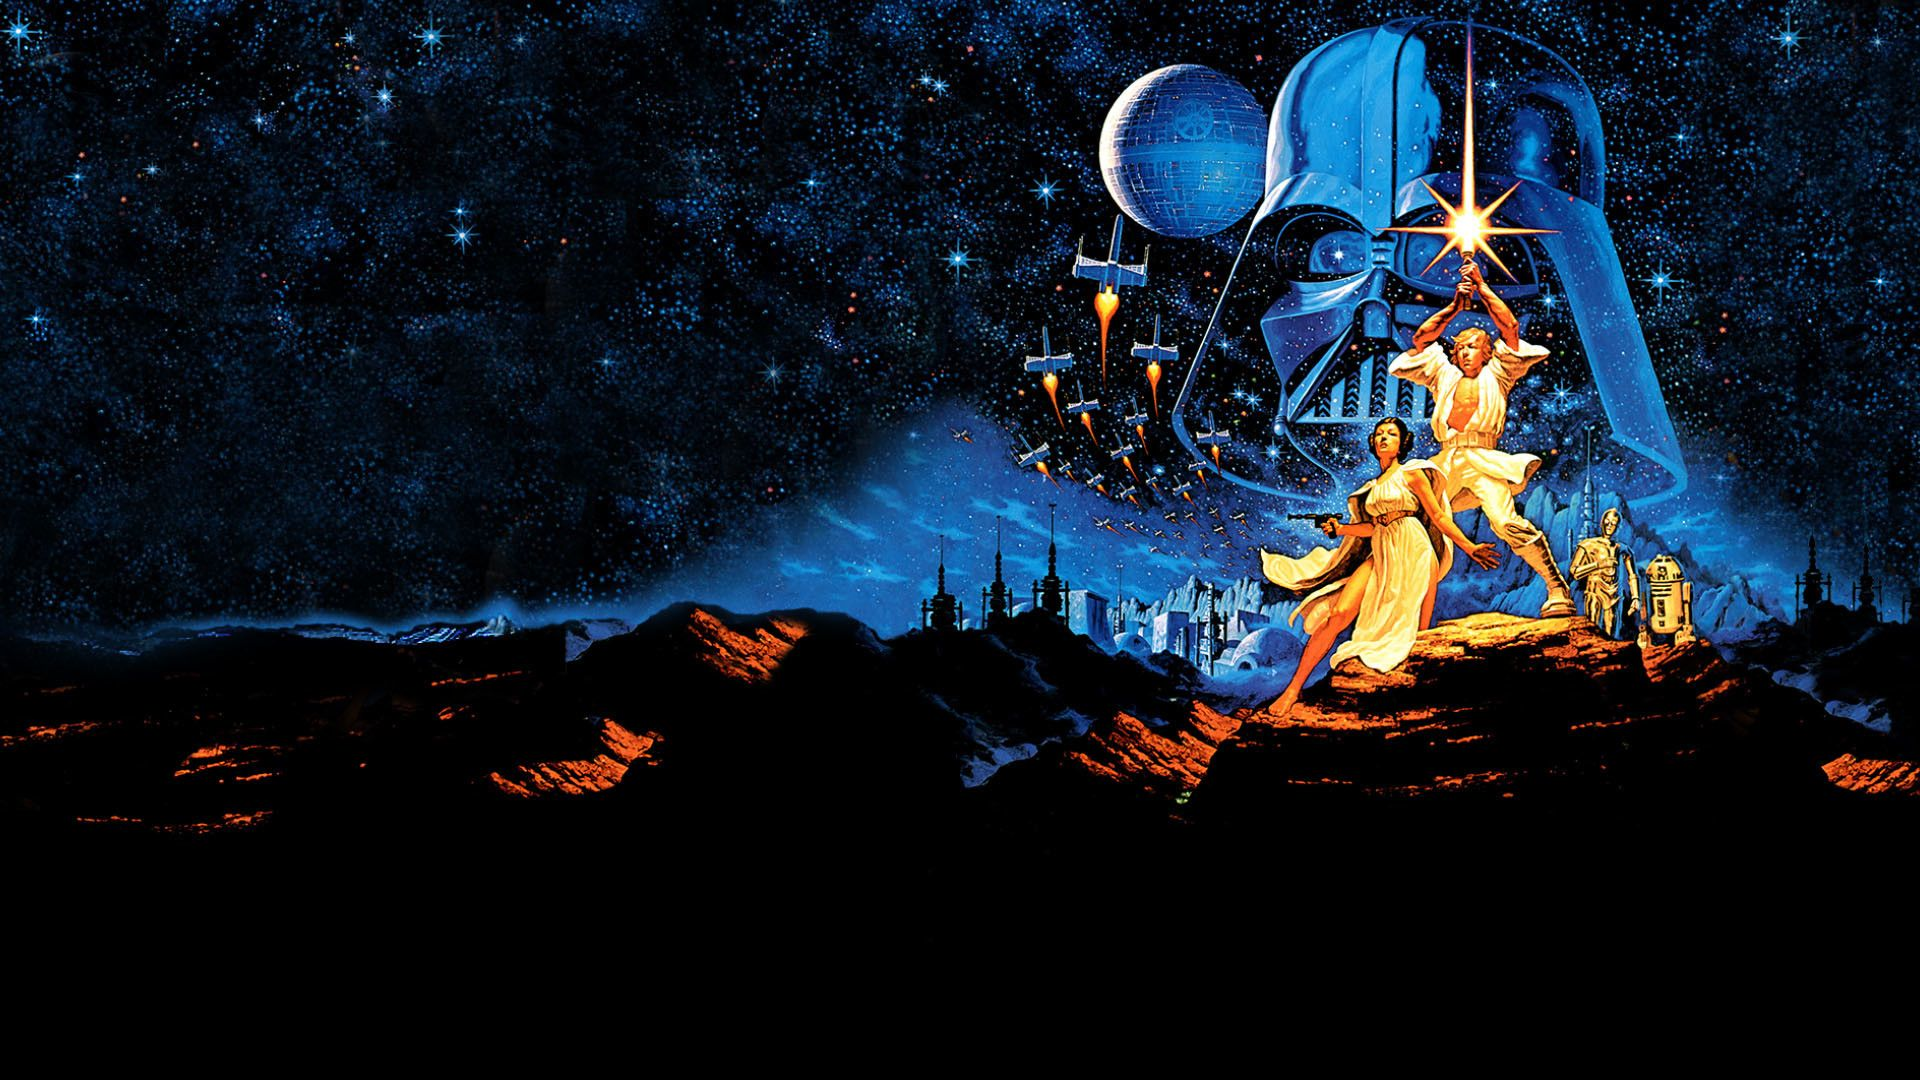 Res 1920x1080 Star Wars Wallpapers High Quality Resolution Star Wars Background Star Wars Wallpaper Star Wars Images